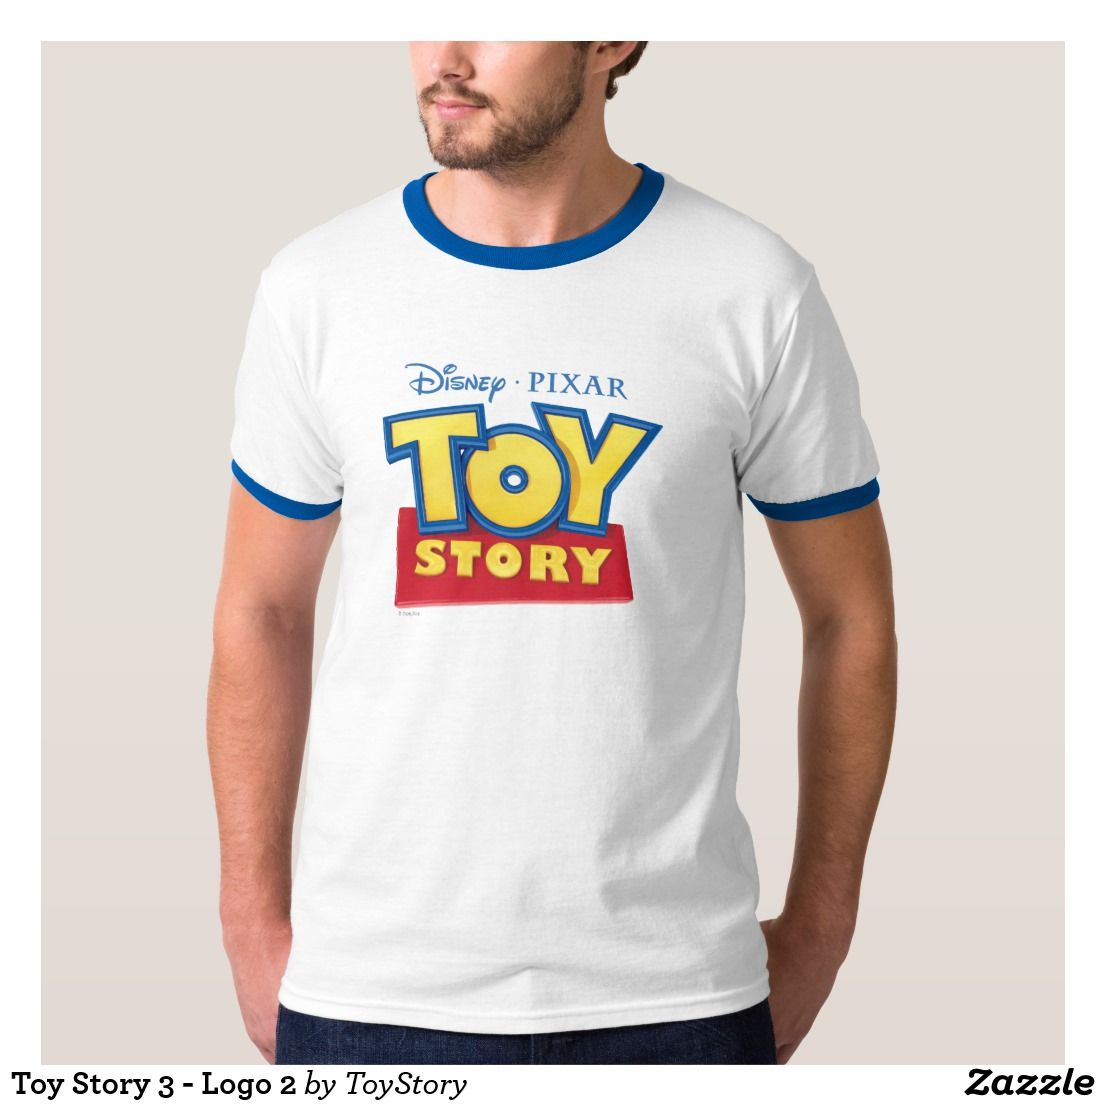 8666a559f4eea7 Toy Story 3 - Logo 2 T-Shirt. Whether you look up to the lovable Woody or  the mischievous Buzz Lightyear, kids and adults alike will adore the cool  ...